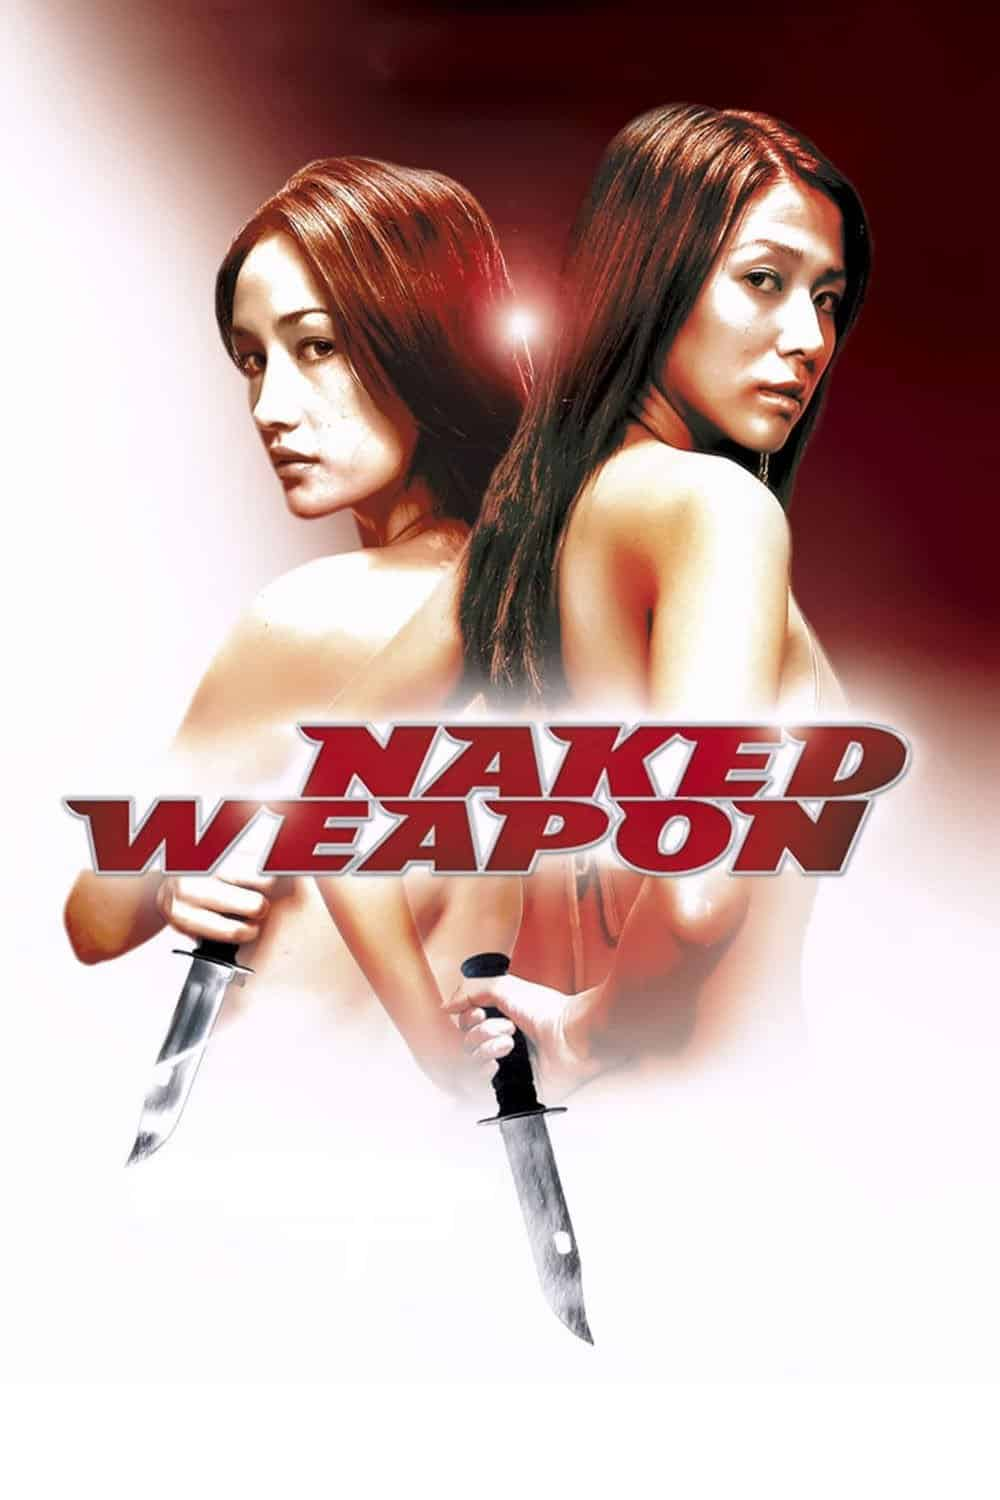 Naked Weapon, 2002